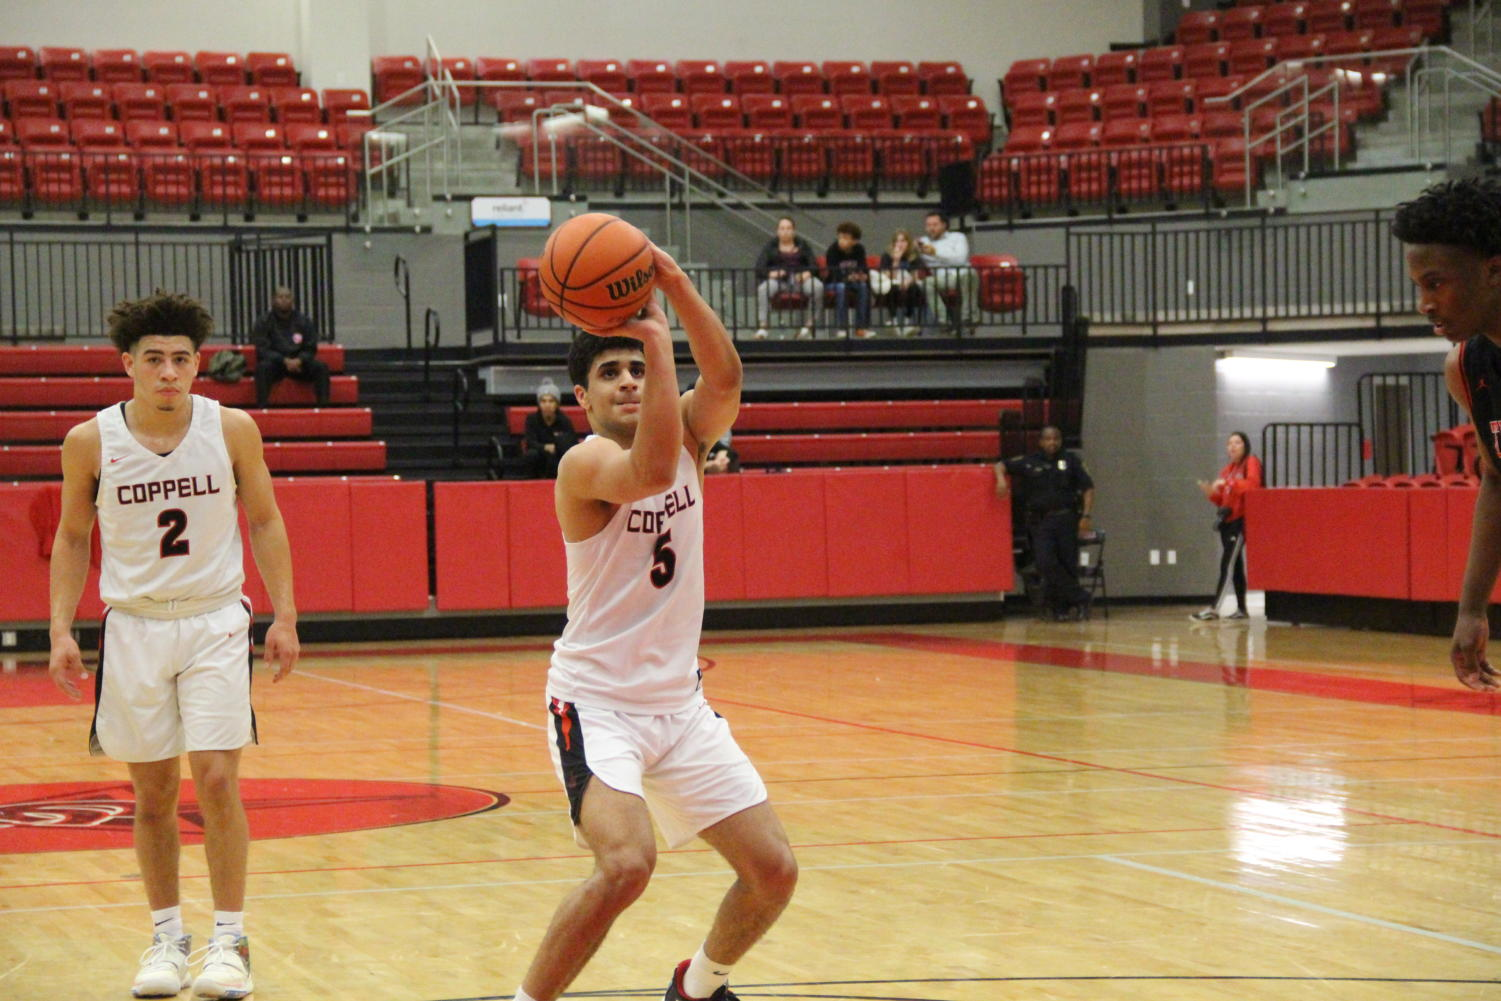 Coppell senior guard Adam Moussa shoots a free throw in the CHS Arena on Tuesday. Coppell won its home game against Trinity, 58-38.